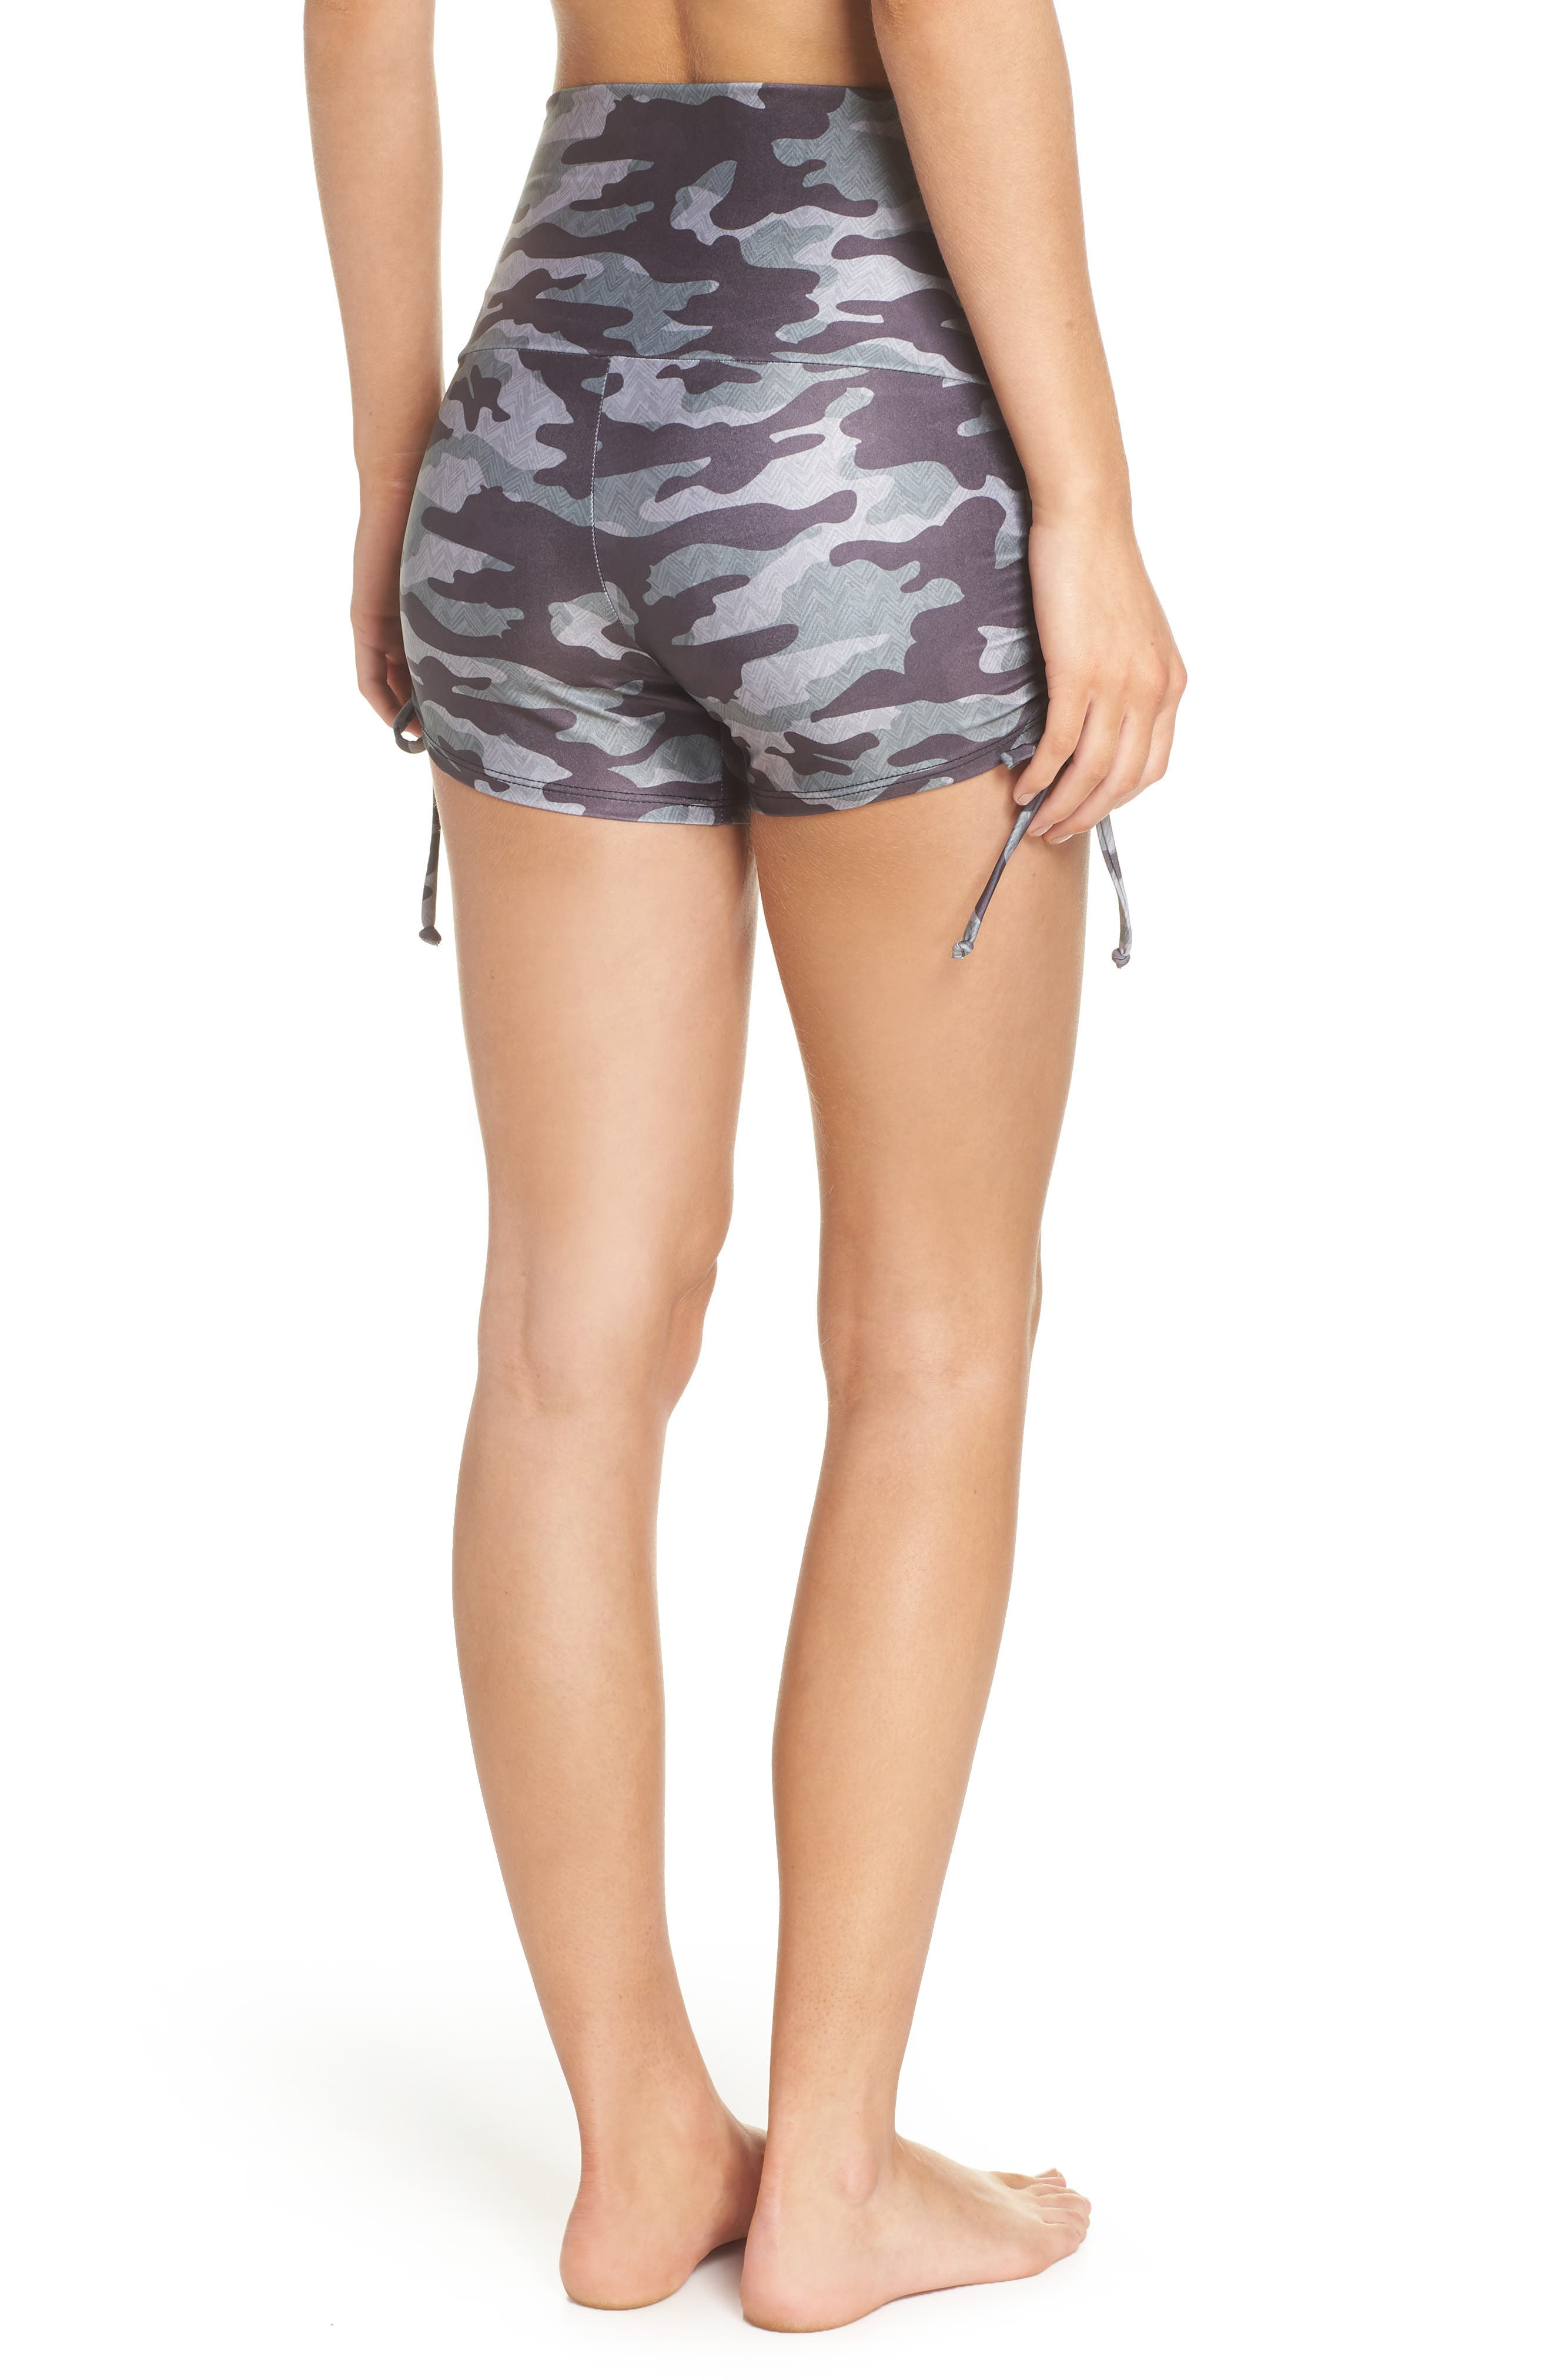 La Coqueta Swim Bottoms,                             Alternate thumbnail 2, color,                             Distressed Camo